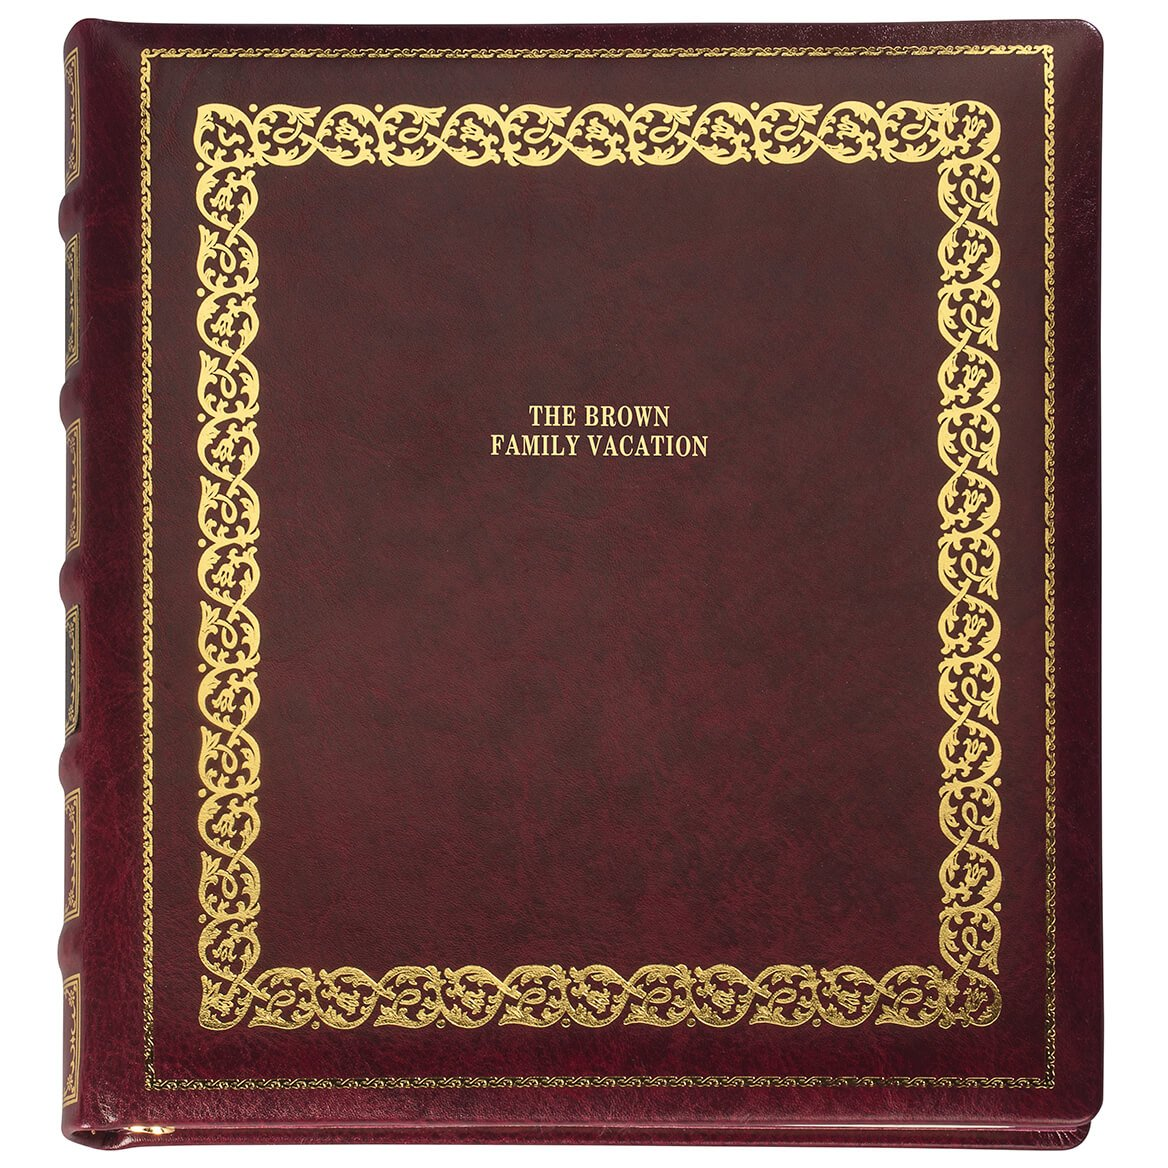 Personalized Library Leather Album - Burgundy 2 Lines